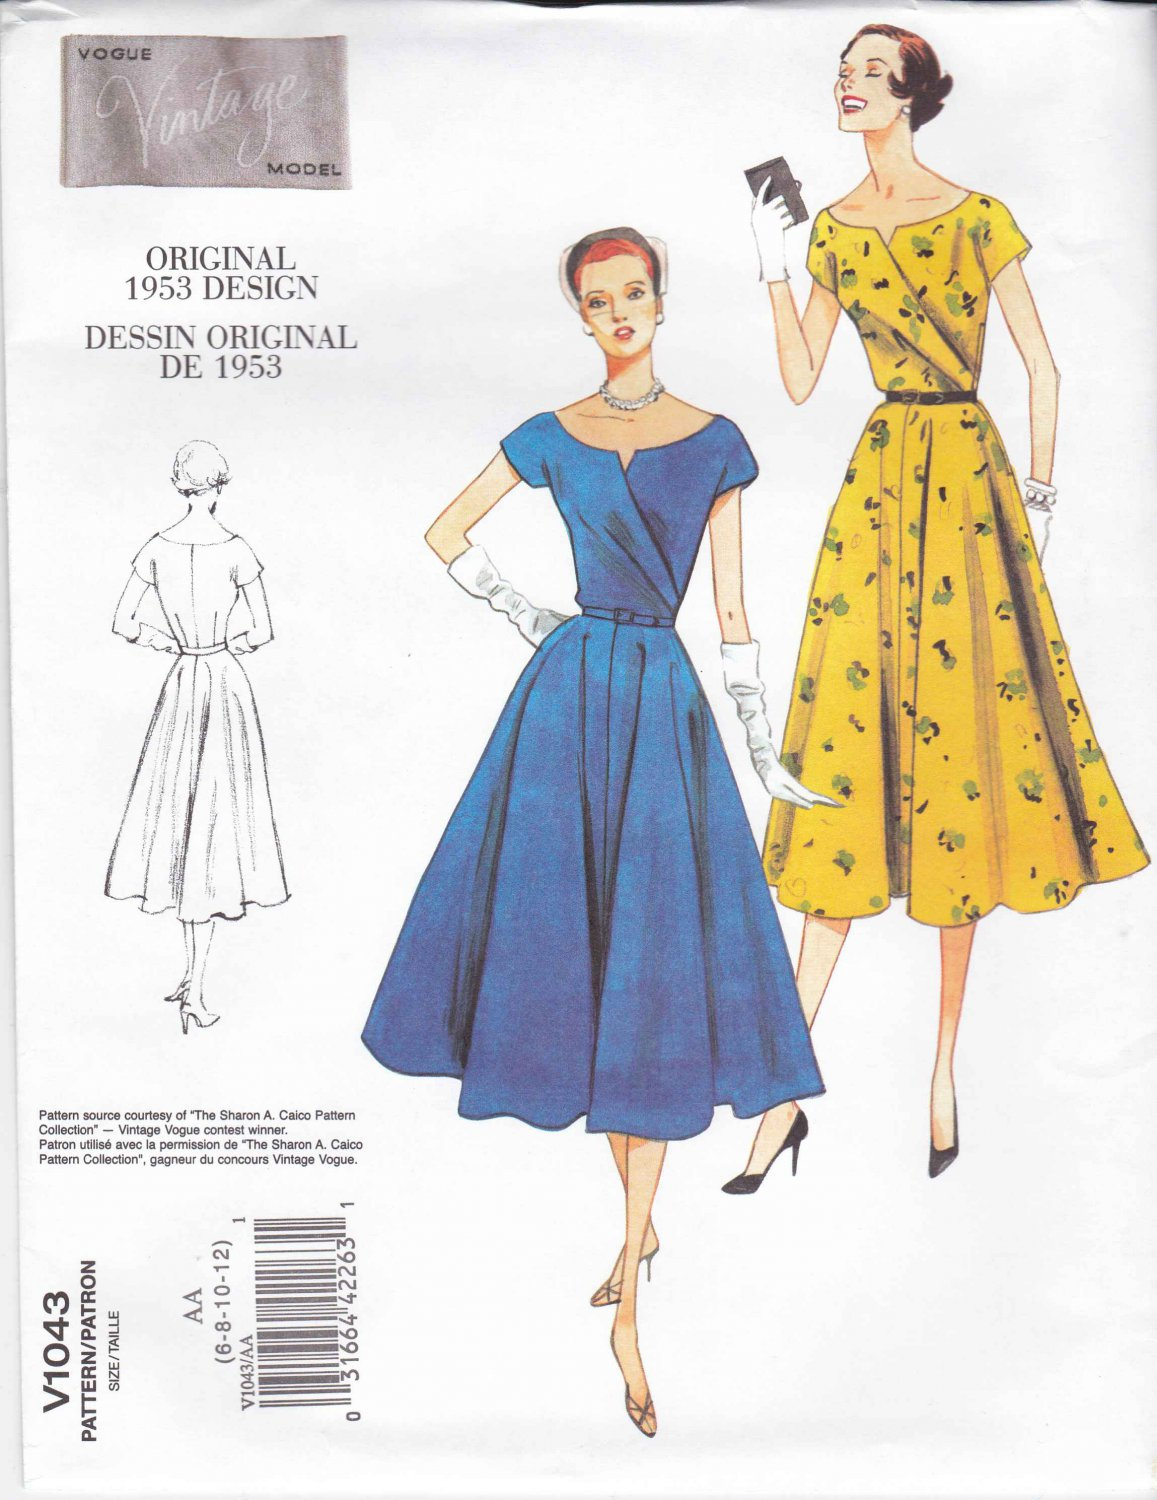 Vogue Sewing Pattern 1043 Misses Size 6-12 Vintage 1953 Style Full Skirted Dress